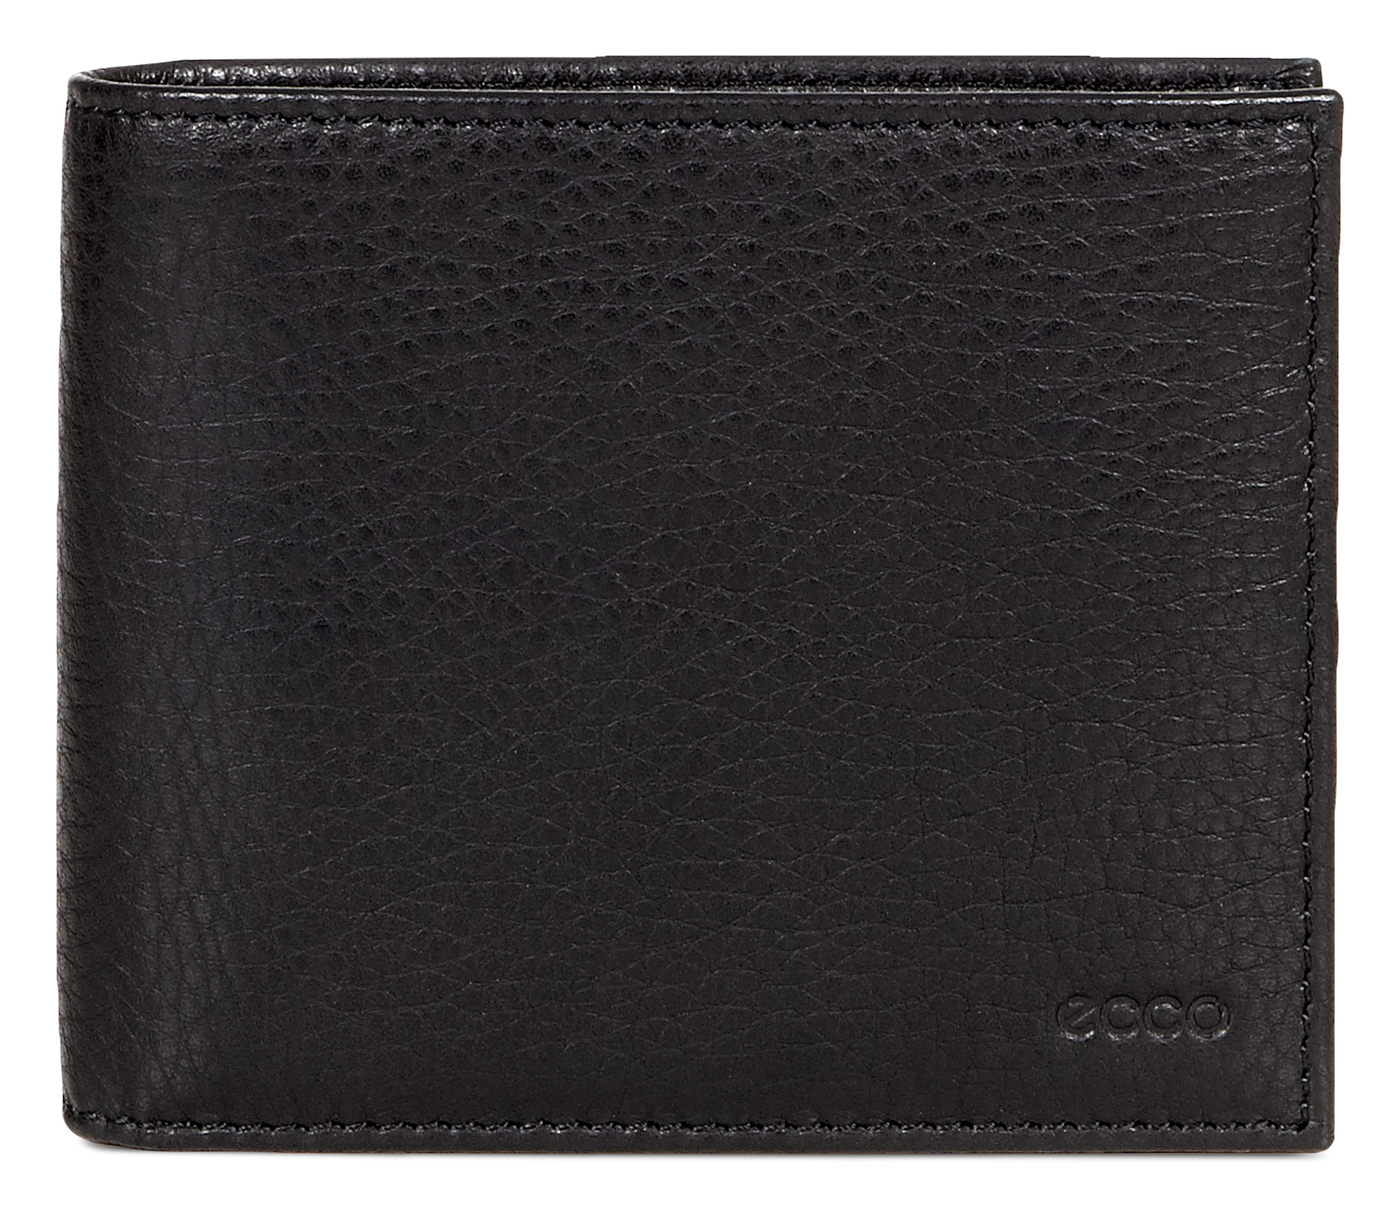 ECCO GORDON Flap Wallet